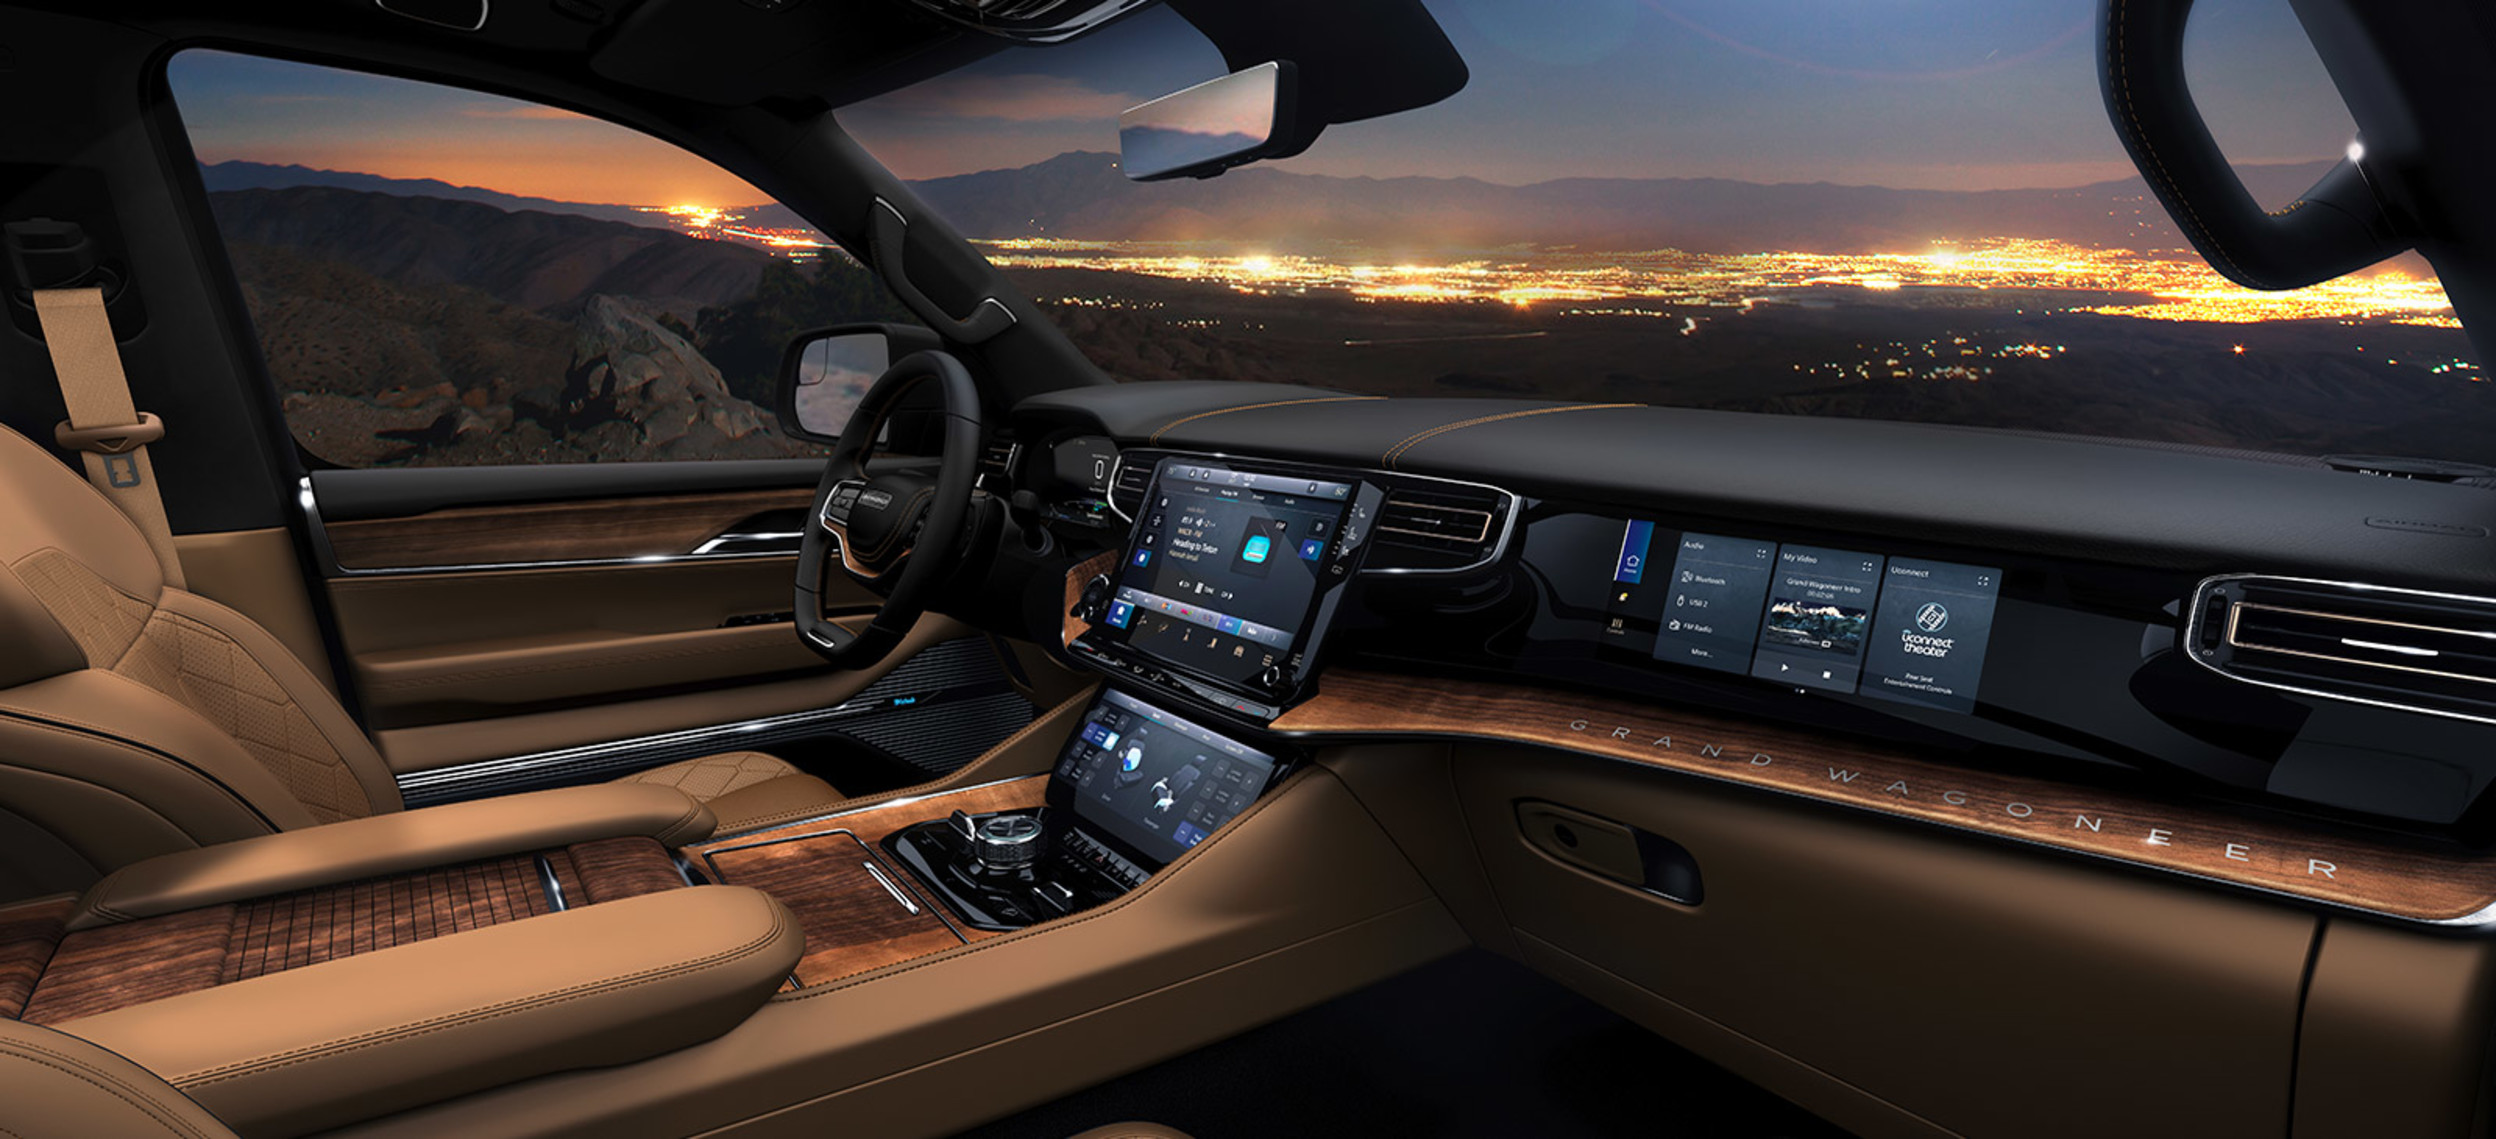 Interior view of the 2022 Grand Wagoneer